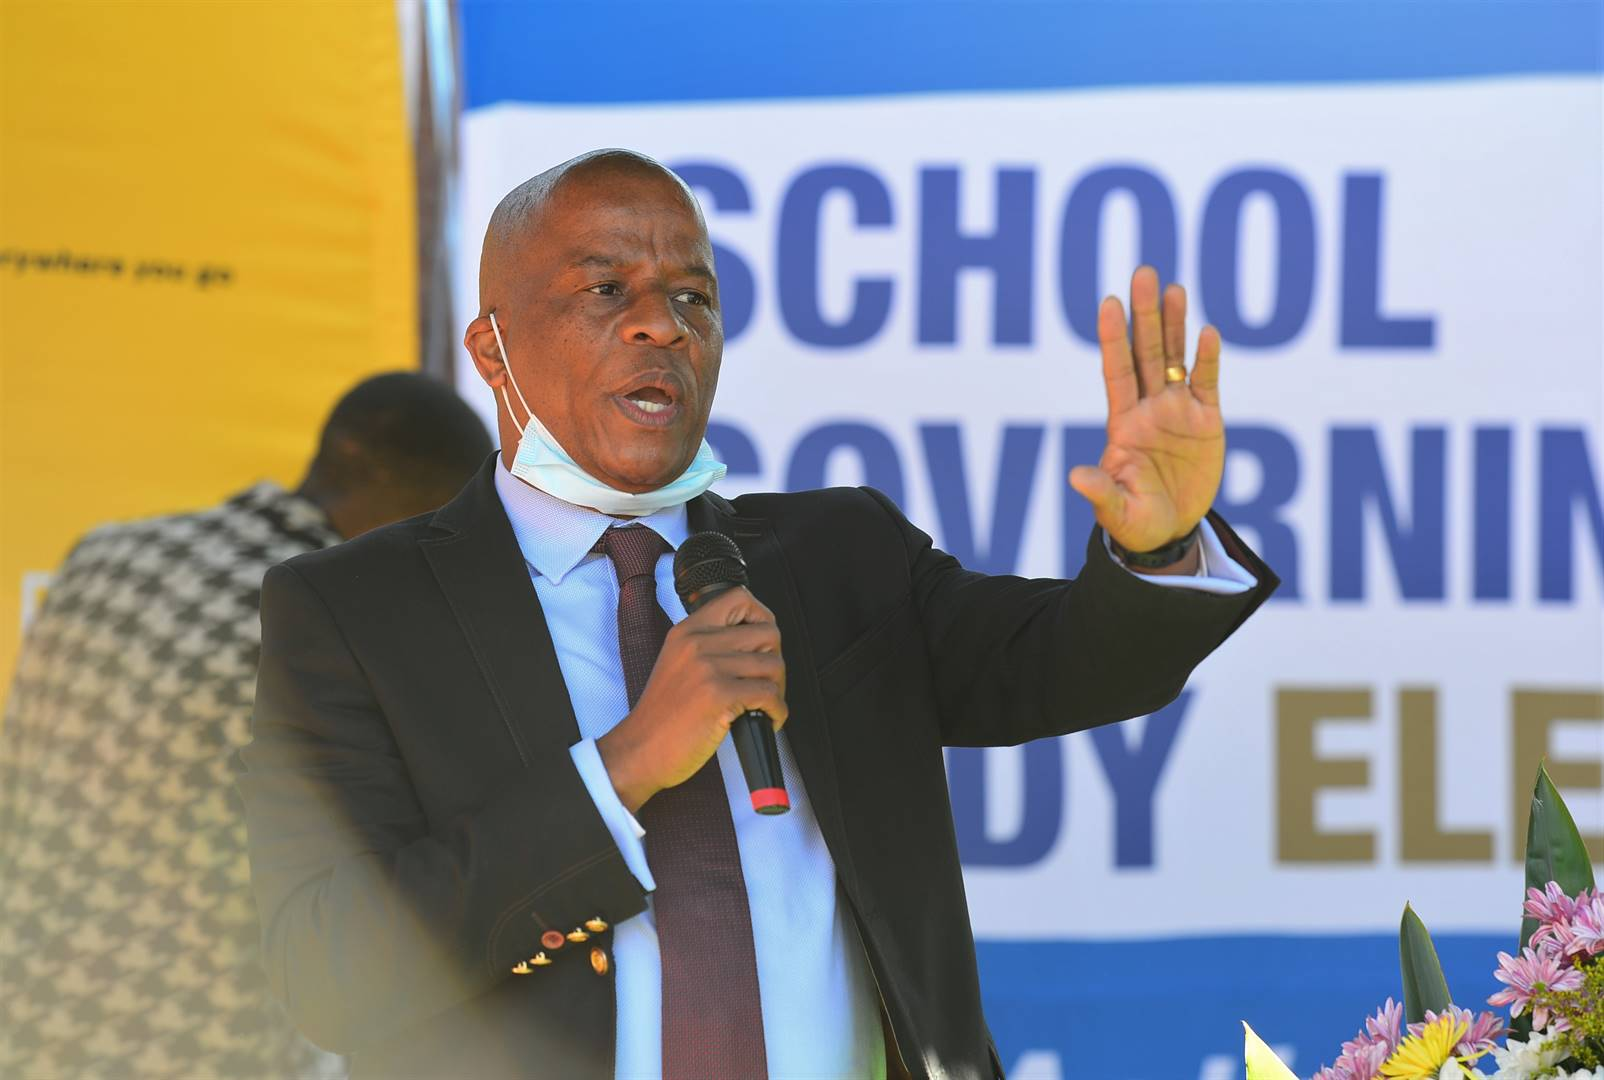 Gauteng education head of department Edward Mosuwe is tasked with implementing recommendations made in the preliminary report. Photo: Morapedi Mashashe